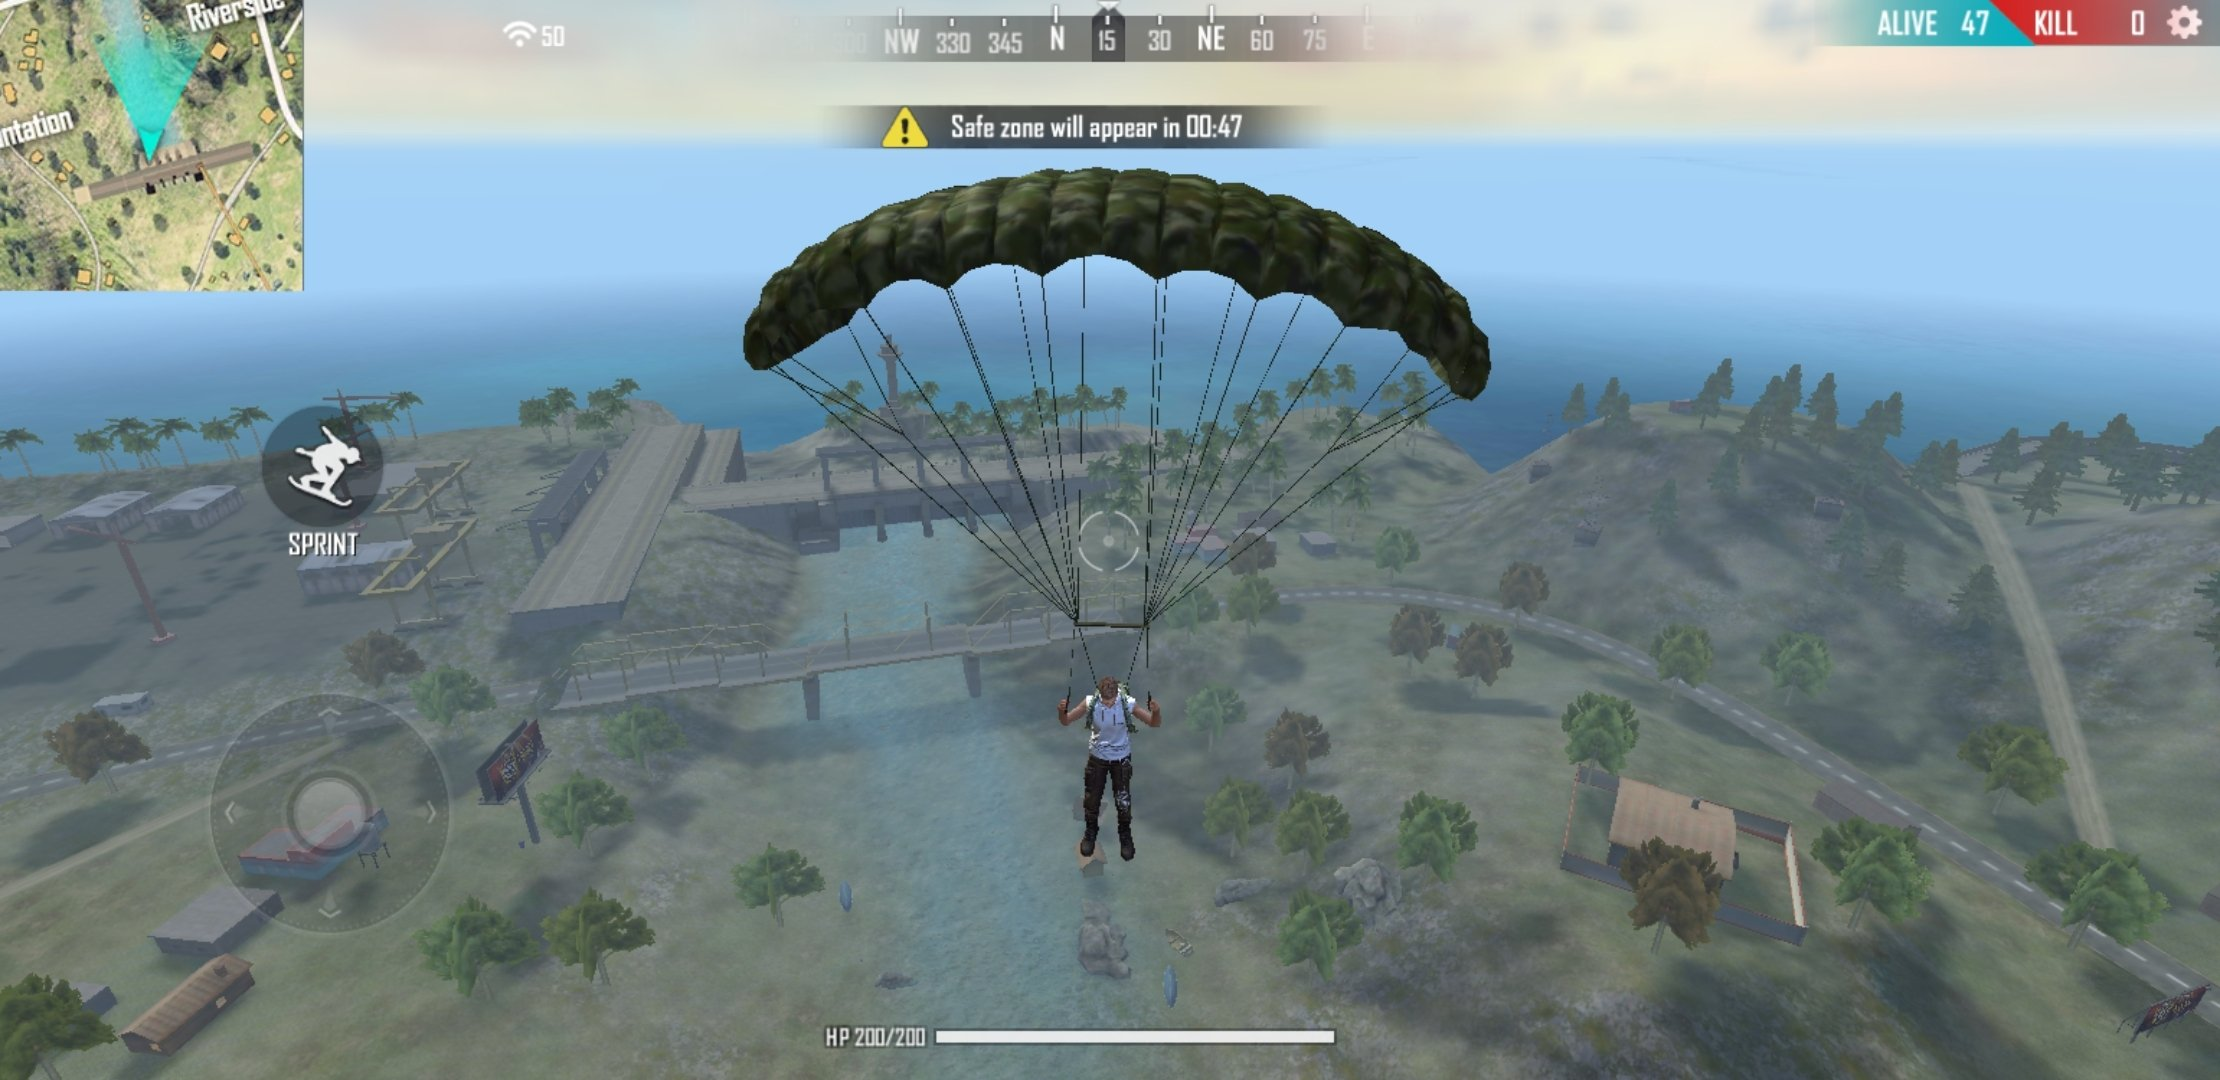 Free Fire Hack Android Oyun Club Online - U-Coin Club Ff Garena